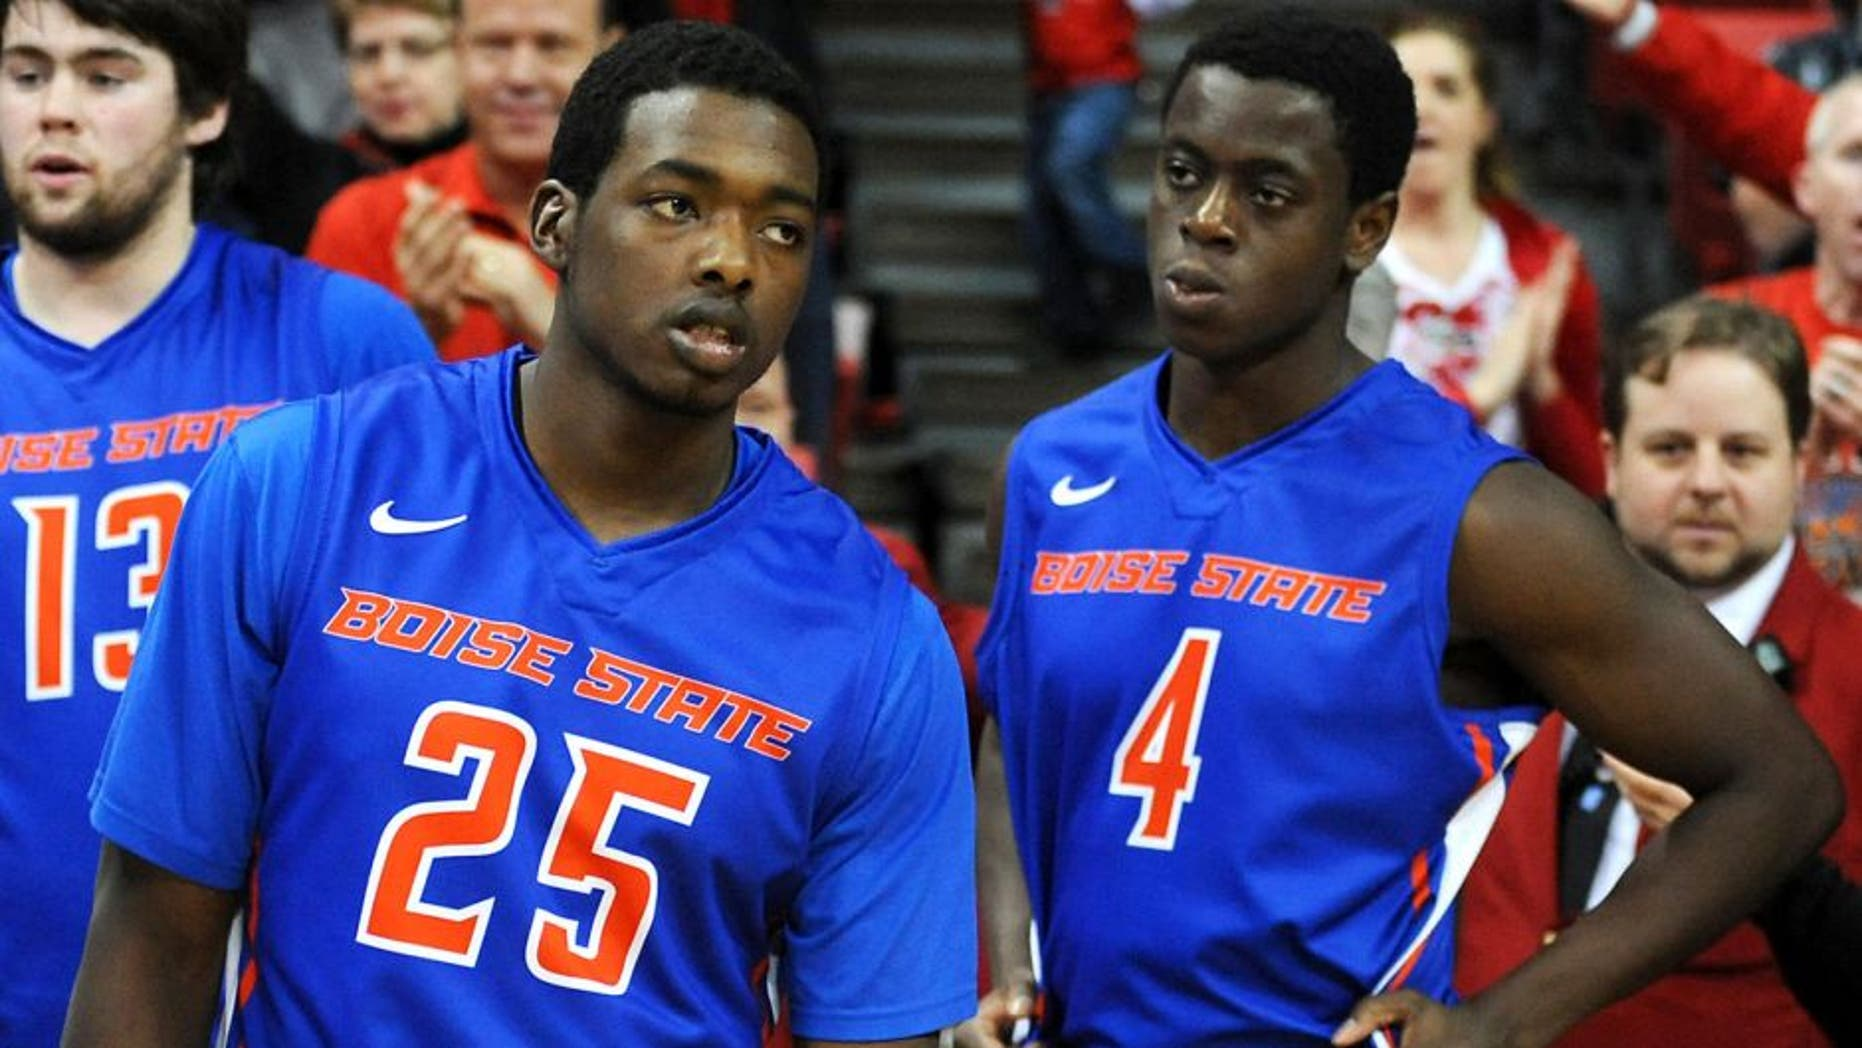 Feb 1, 2014; Las Vegas, NV, USA; Boise State Broncos players Dezmyn Trent (25) and Thomas Bropleh (4) react after the game against the UNLV Runnin' Rebels at Thomas & Mack Center. The Rebels won the game 73-69. Mandatory Credit: Stephen R. Sylvanie-USA TODAY Sports